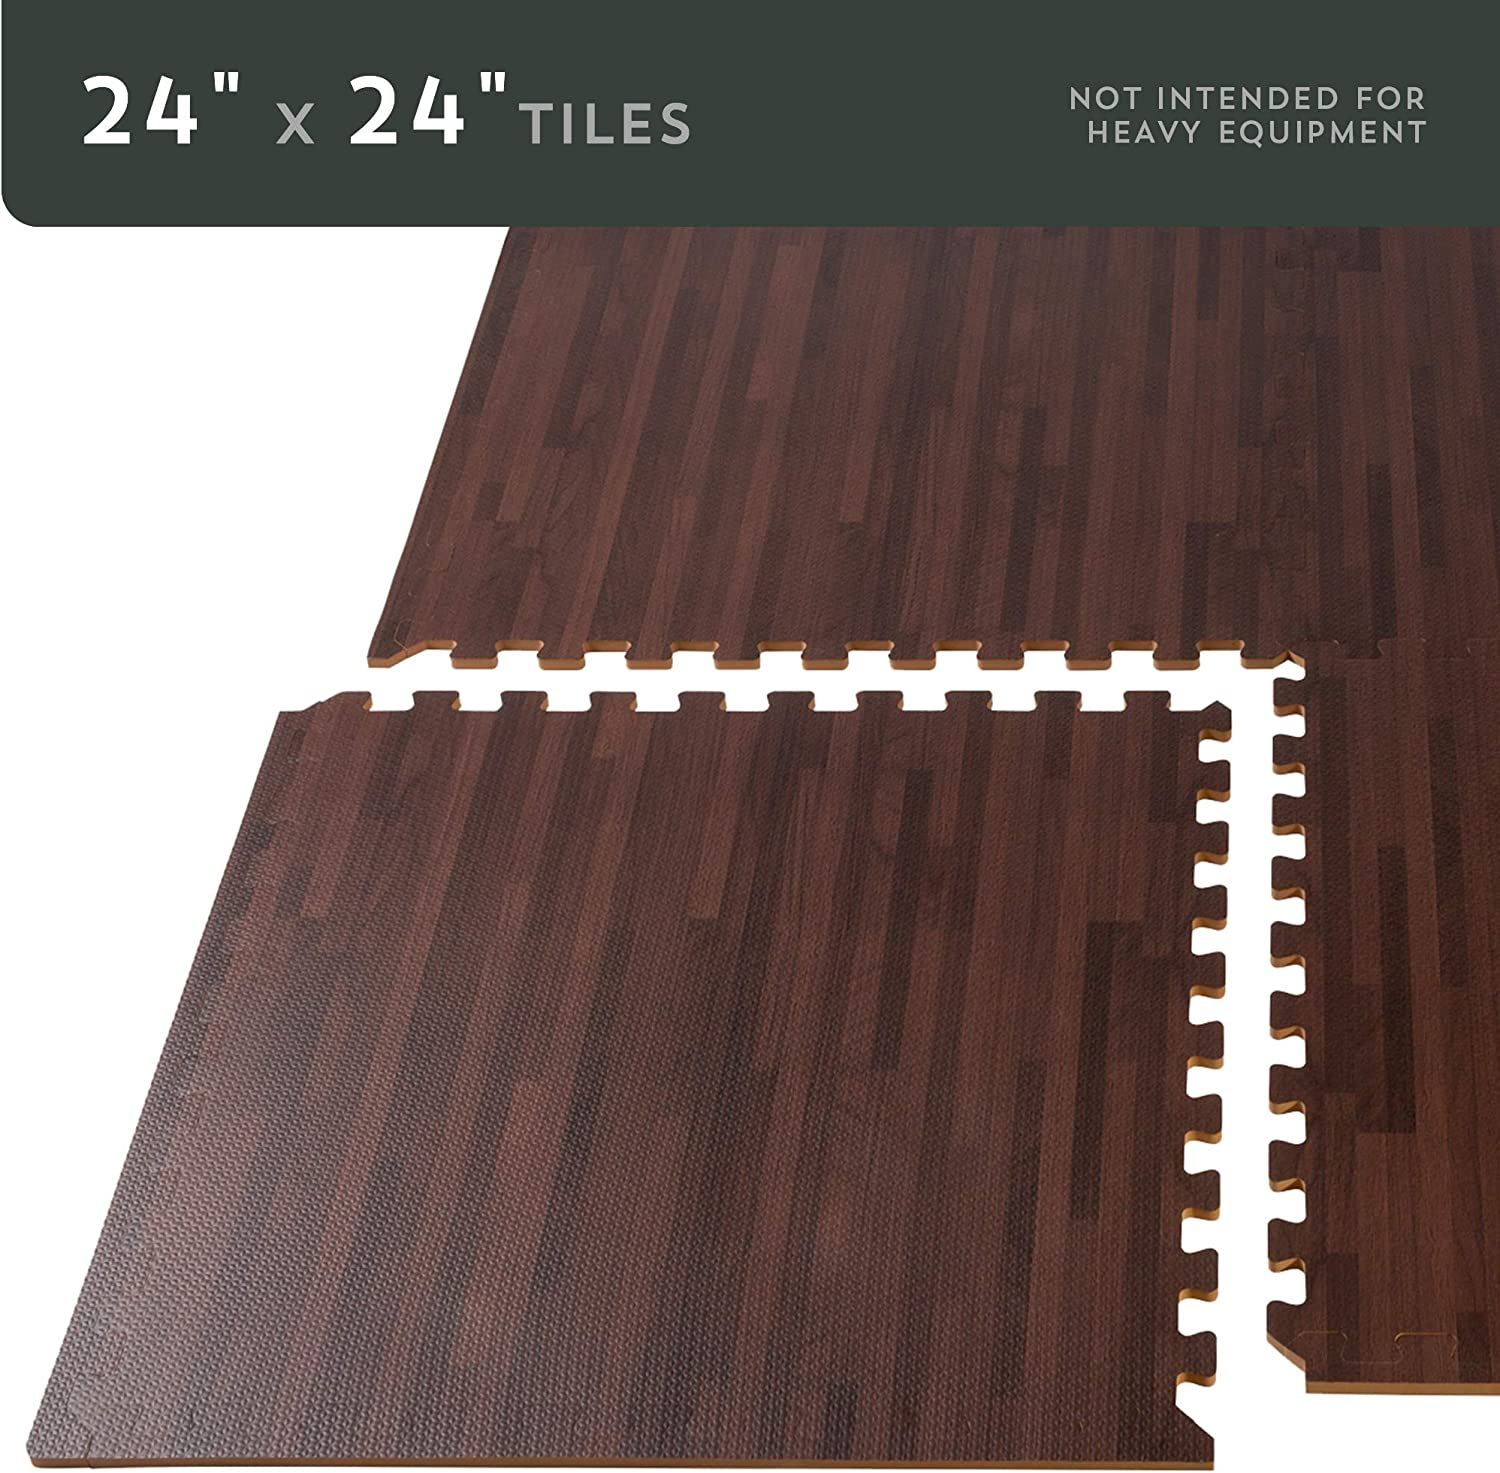 Forest Floor 3//8 Inch Thick Printed Foam Tiles Premium Wood Grain Interlocking Foam Floor Mats Anti-Fatigue Flooring